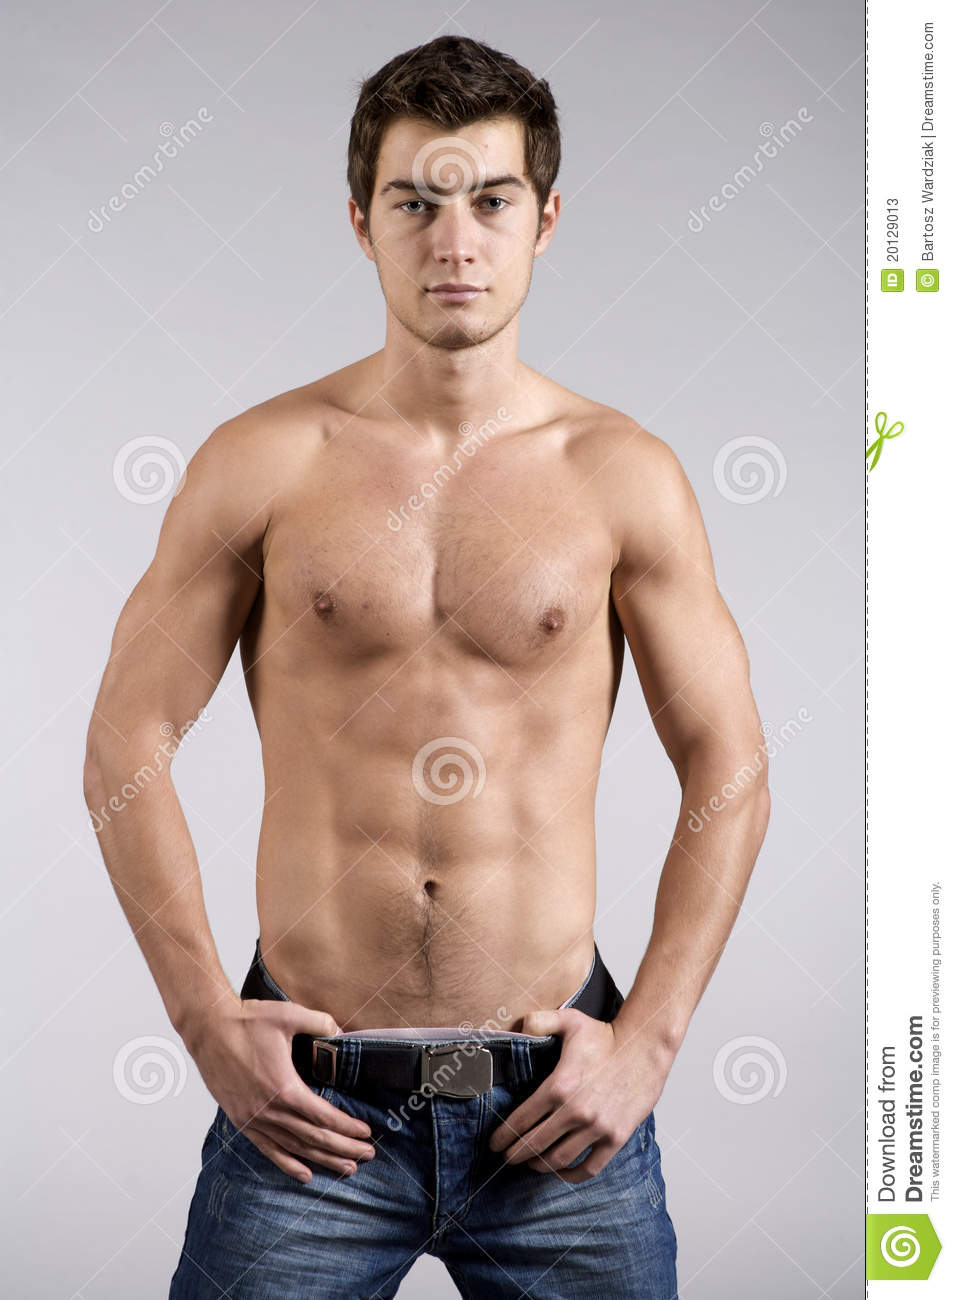 Young male underwear model on grey background.